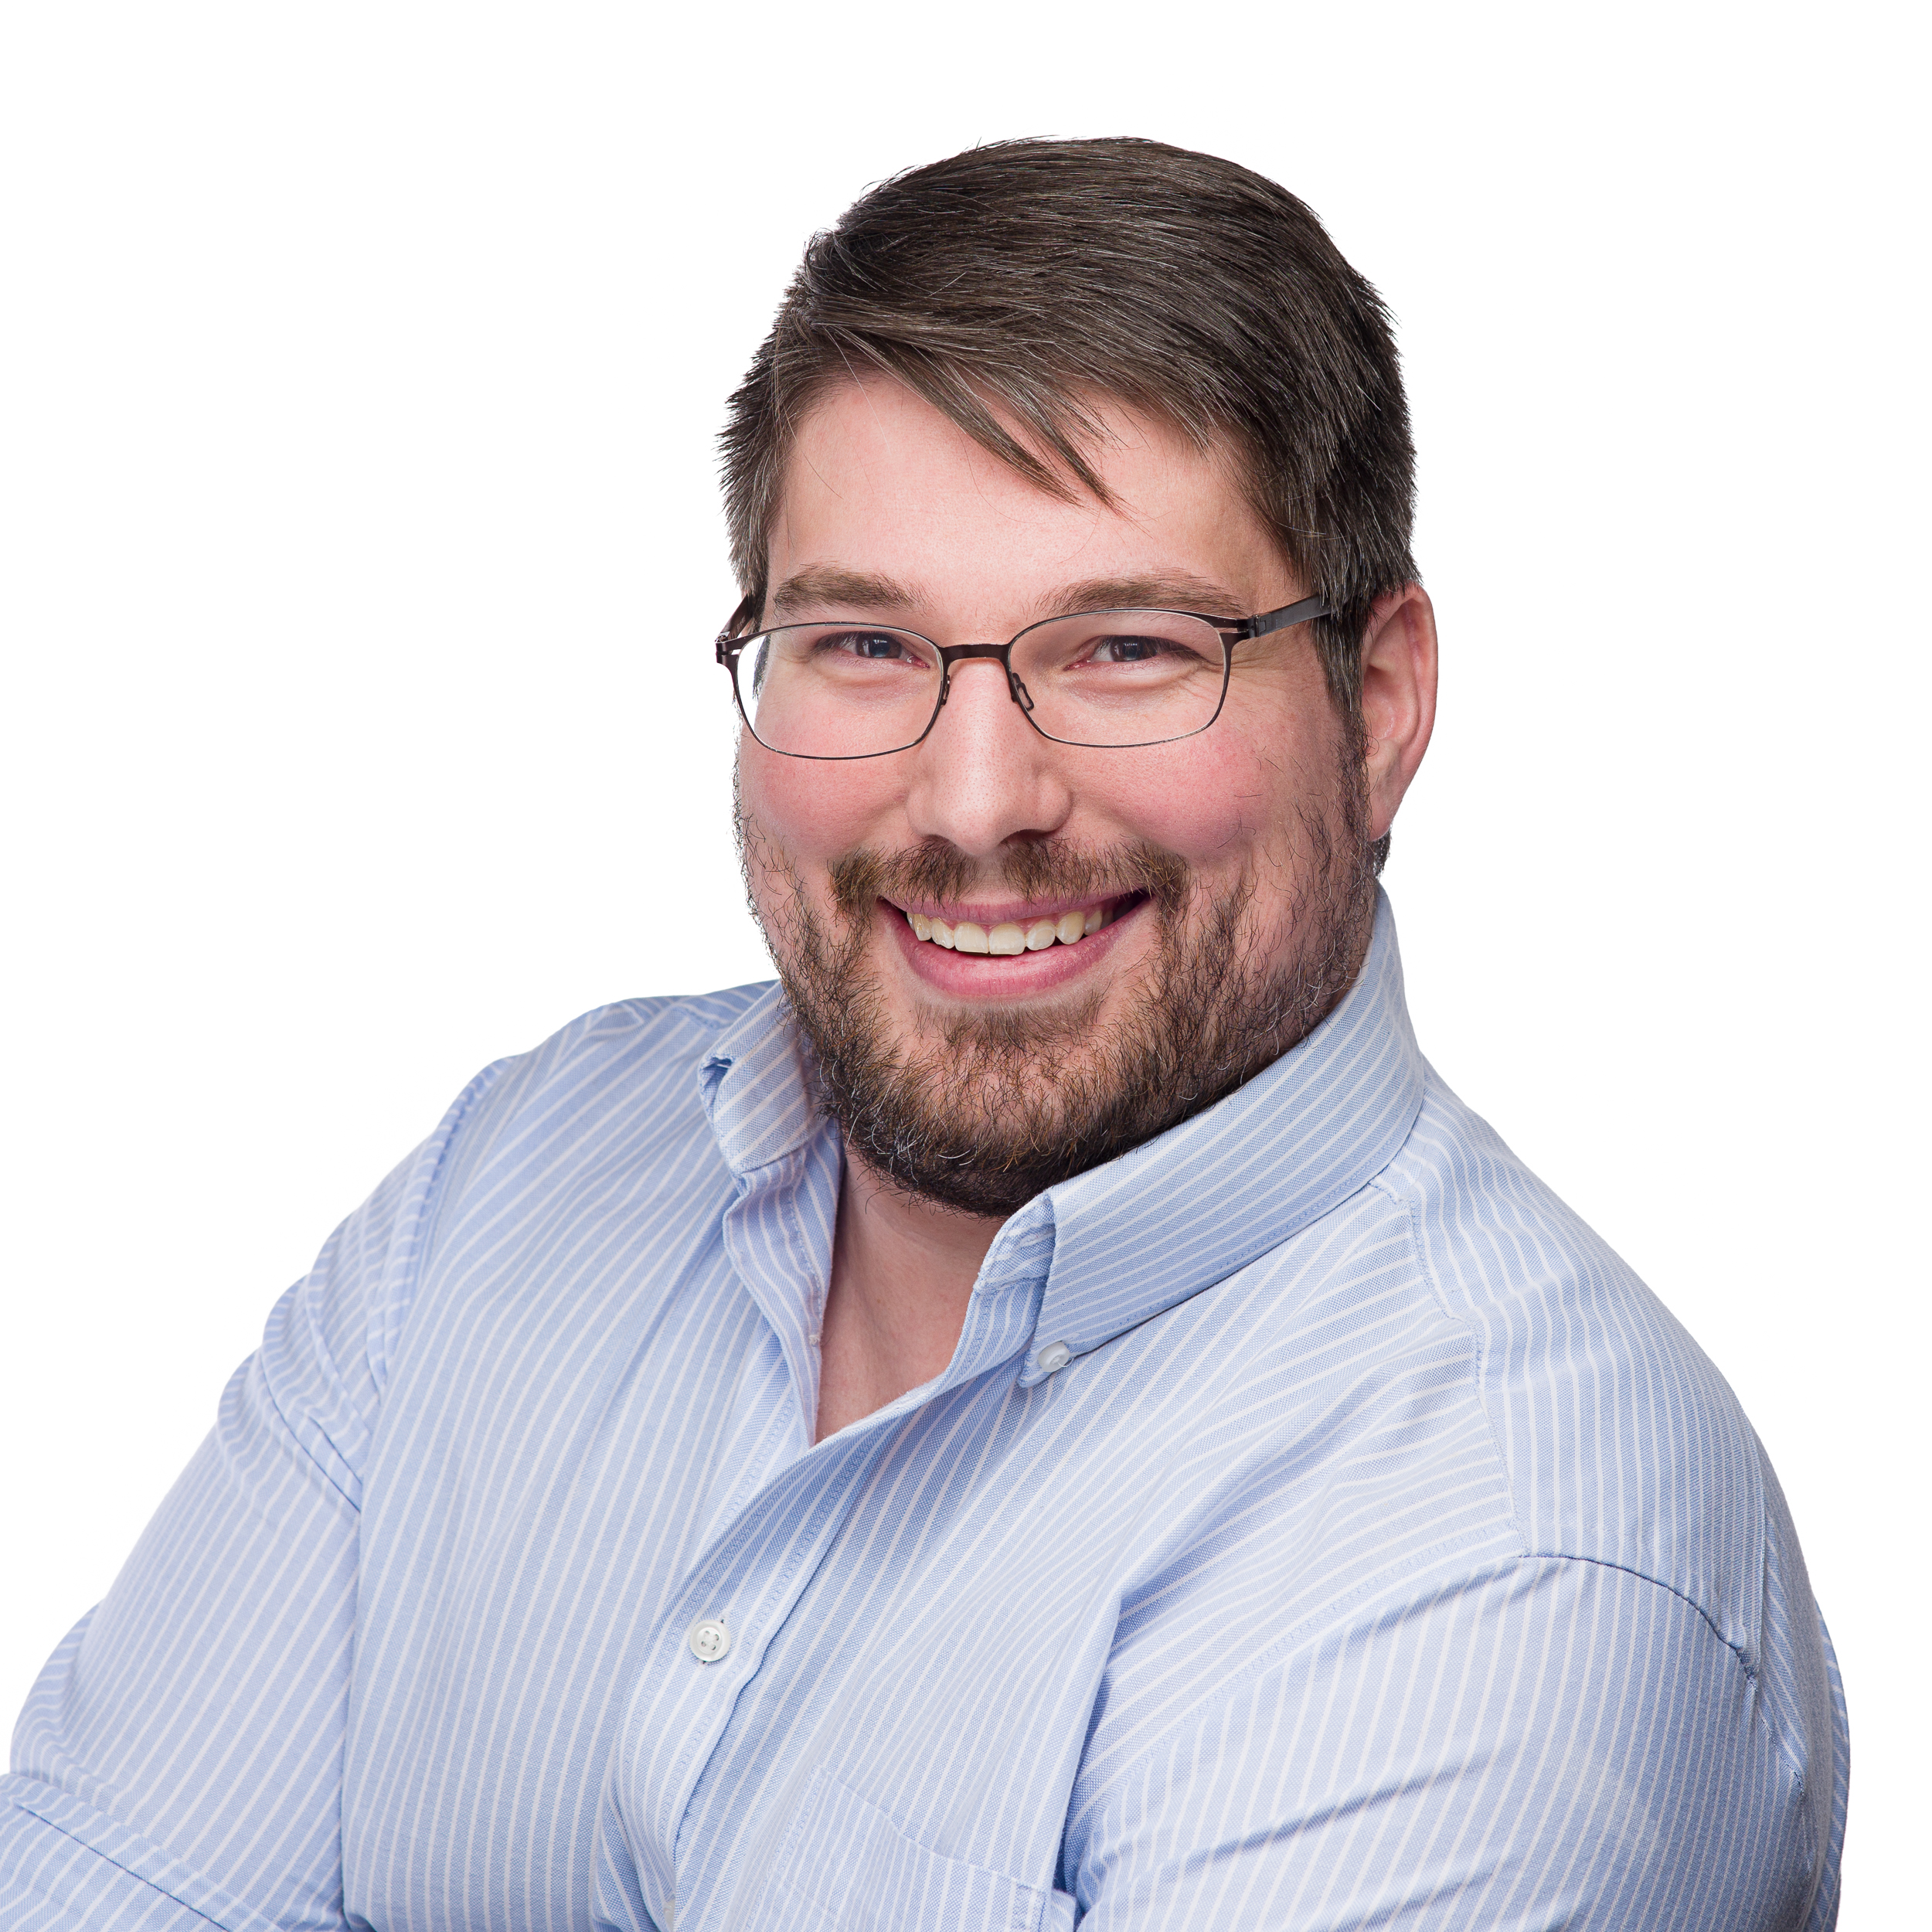 Brett Wald, EA - Partner specializing in individual income tax, computerized accounting systems, internal processes, sustainability and profitability analysis.